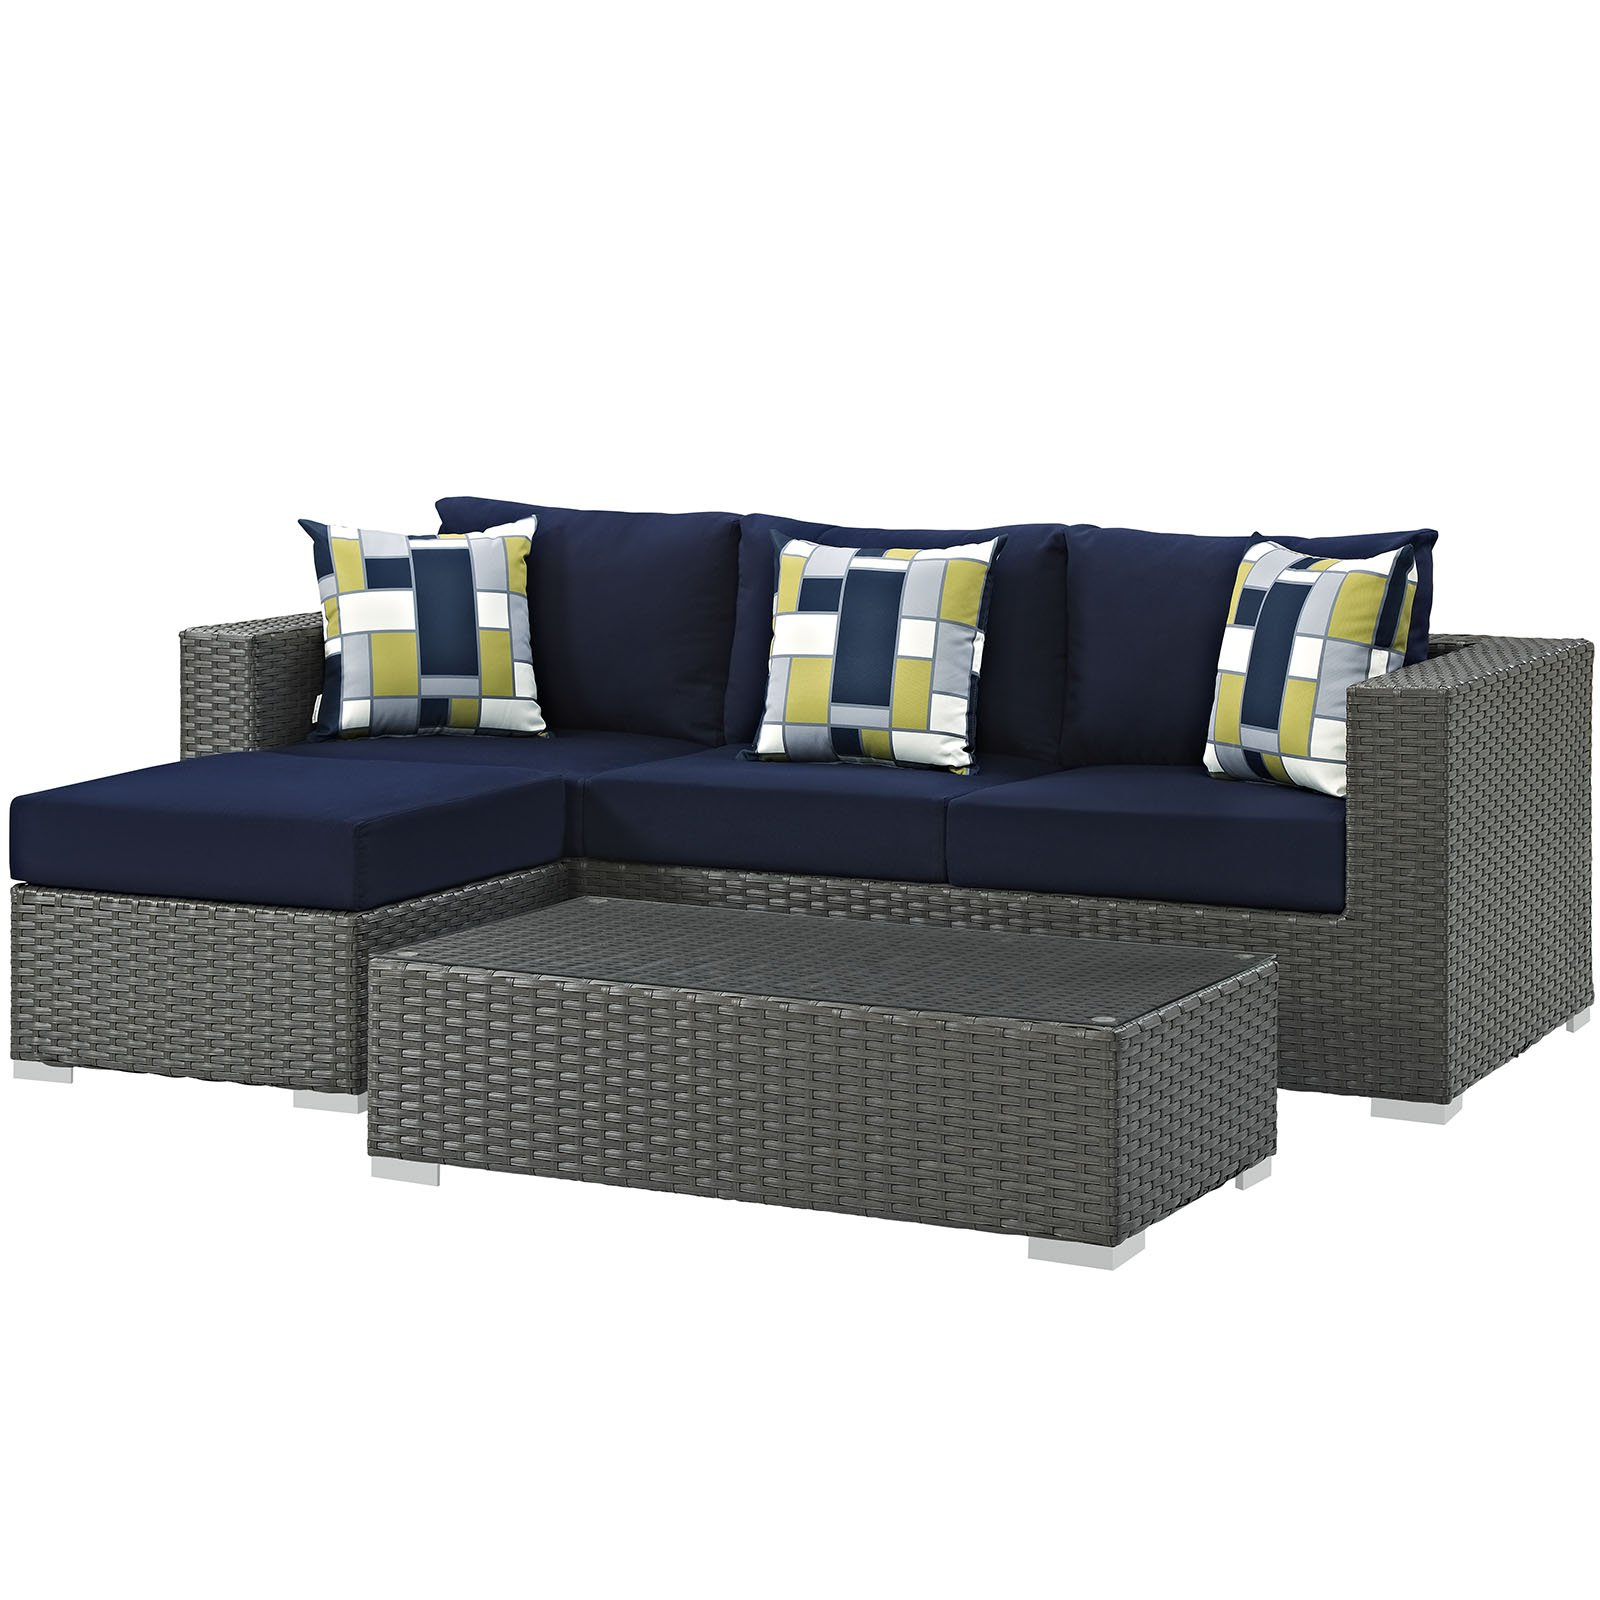 Fashionable Modway Furniture Modern Sojourn 3 Piece Outdoor Patio With Regard To Castelli Loveseats With Cushions (View 13 of 20)